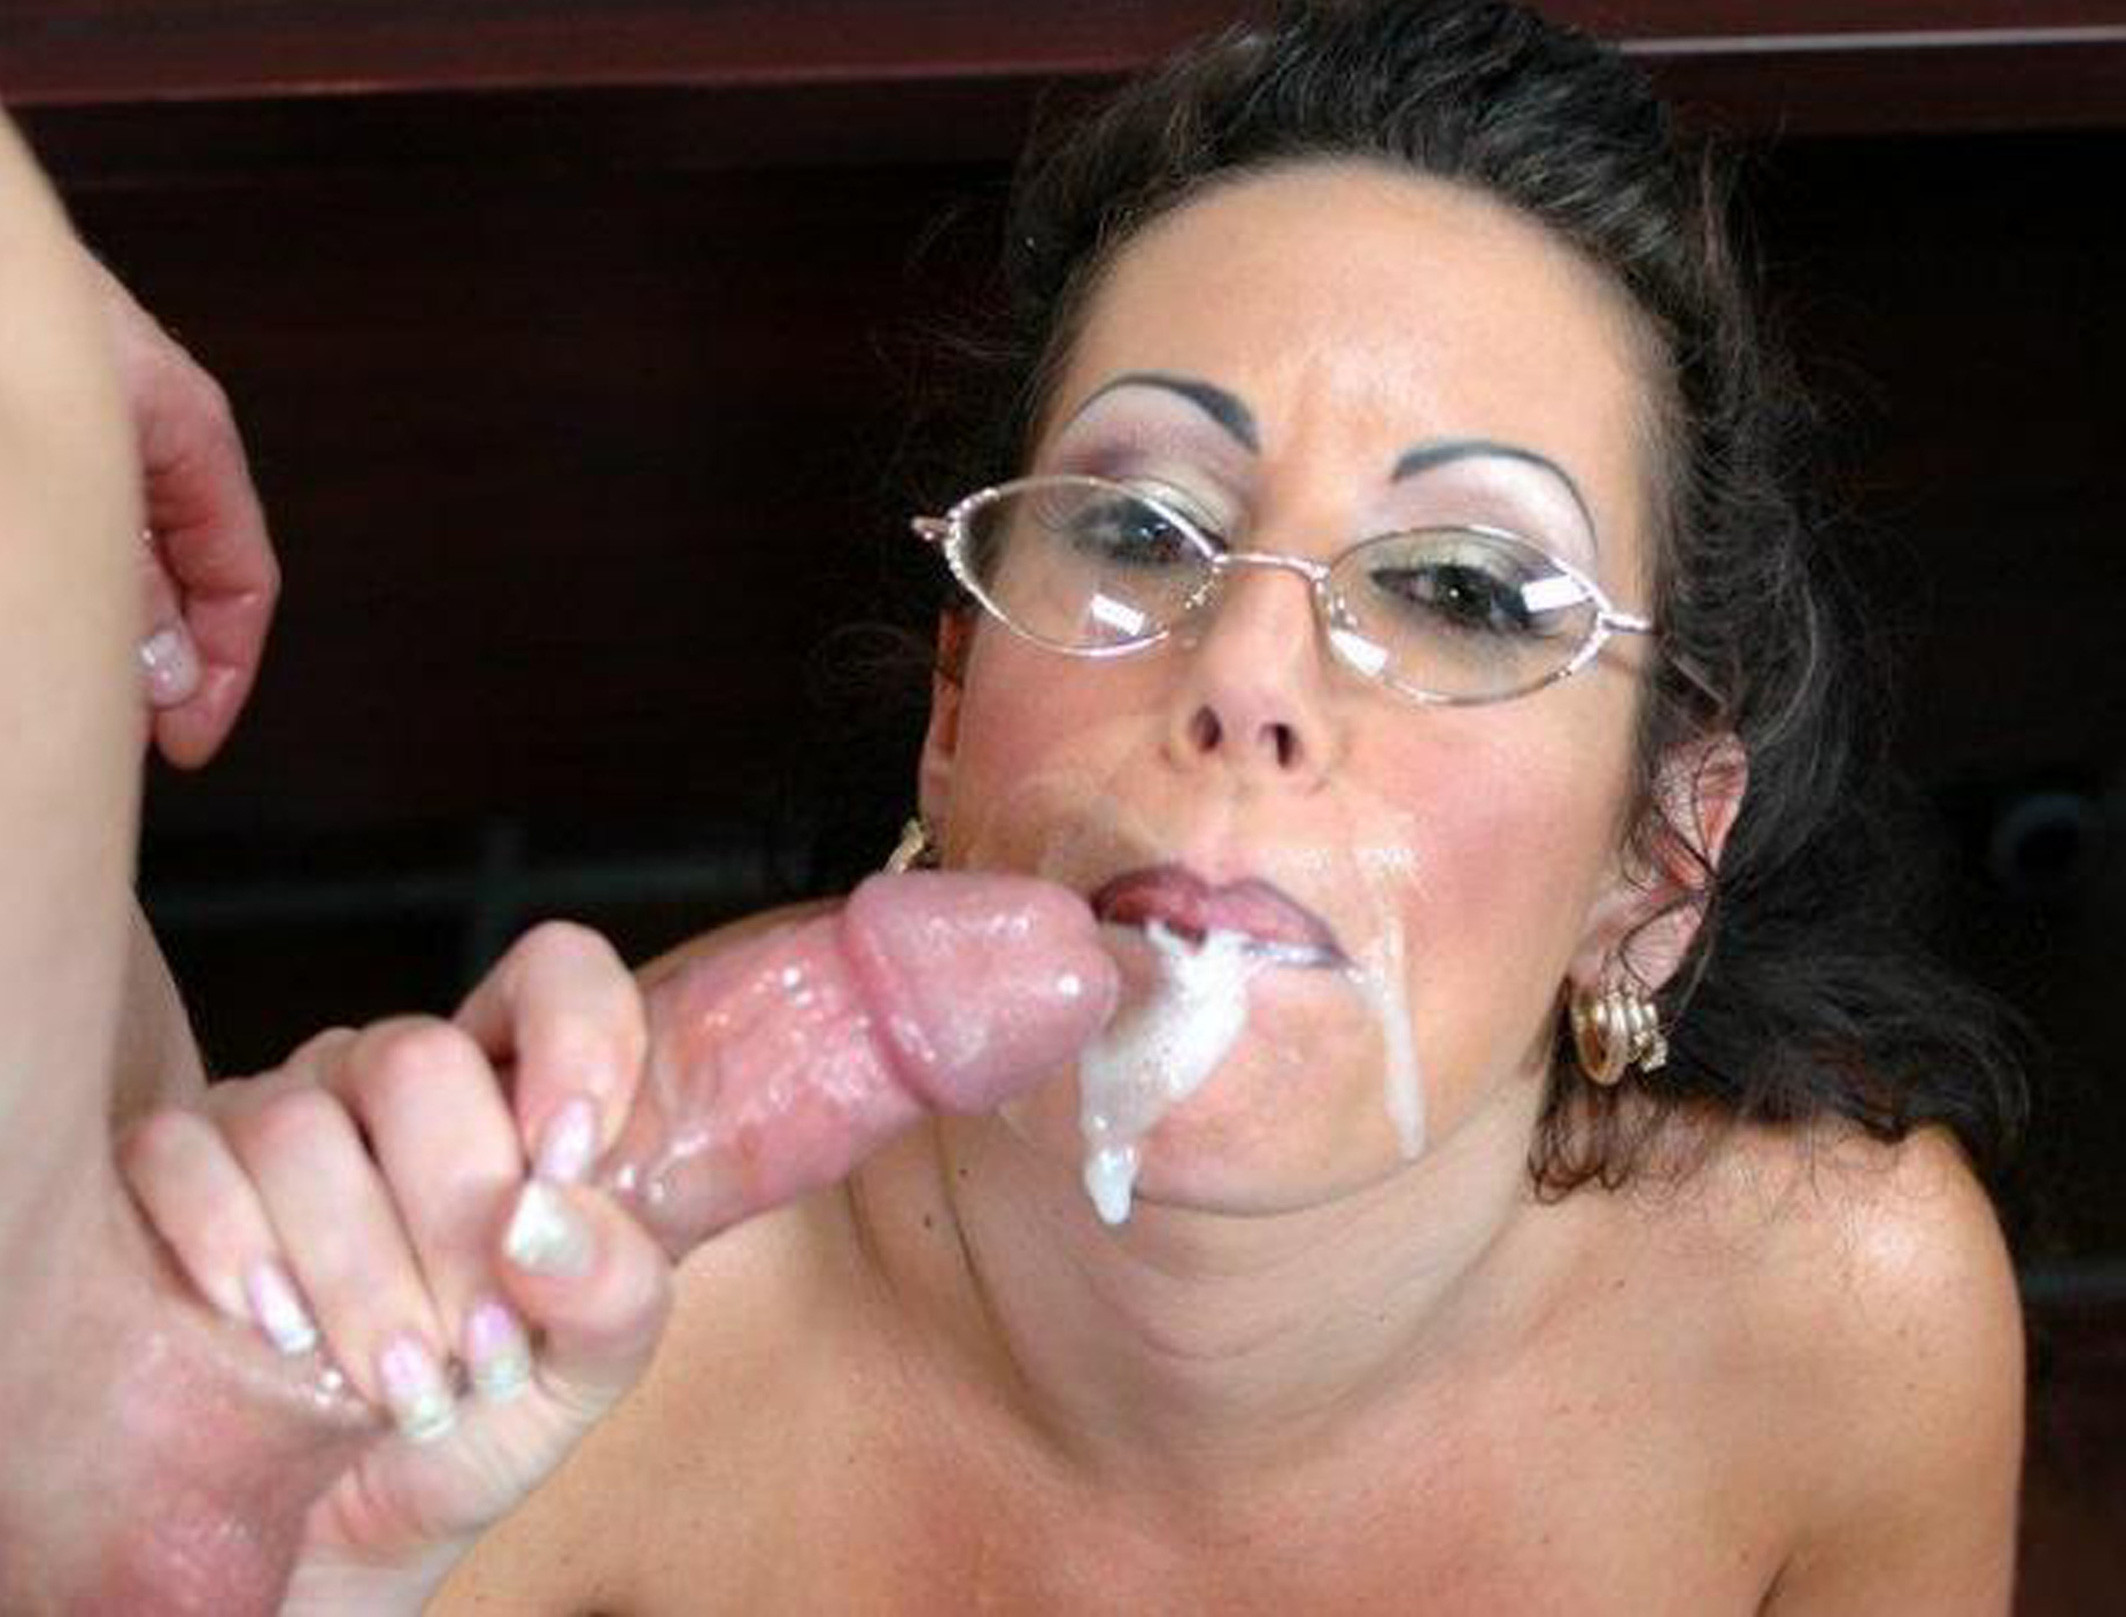 Anal creampie orgy video